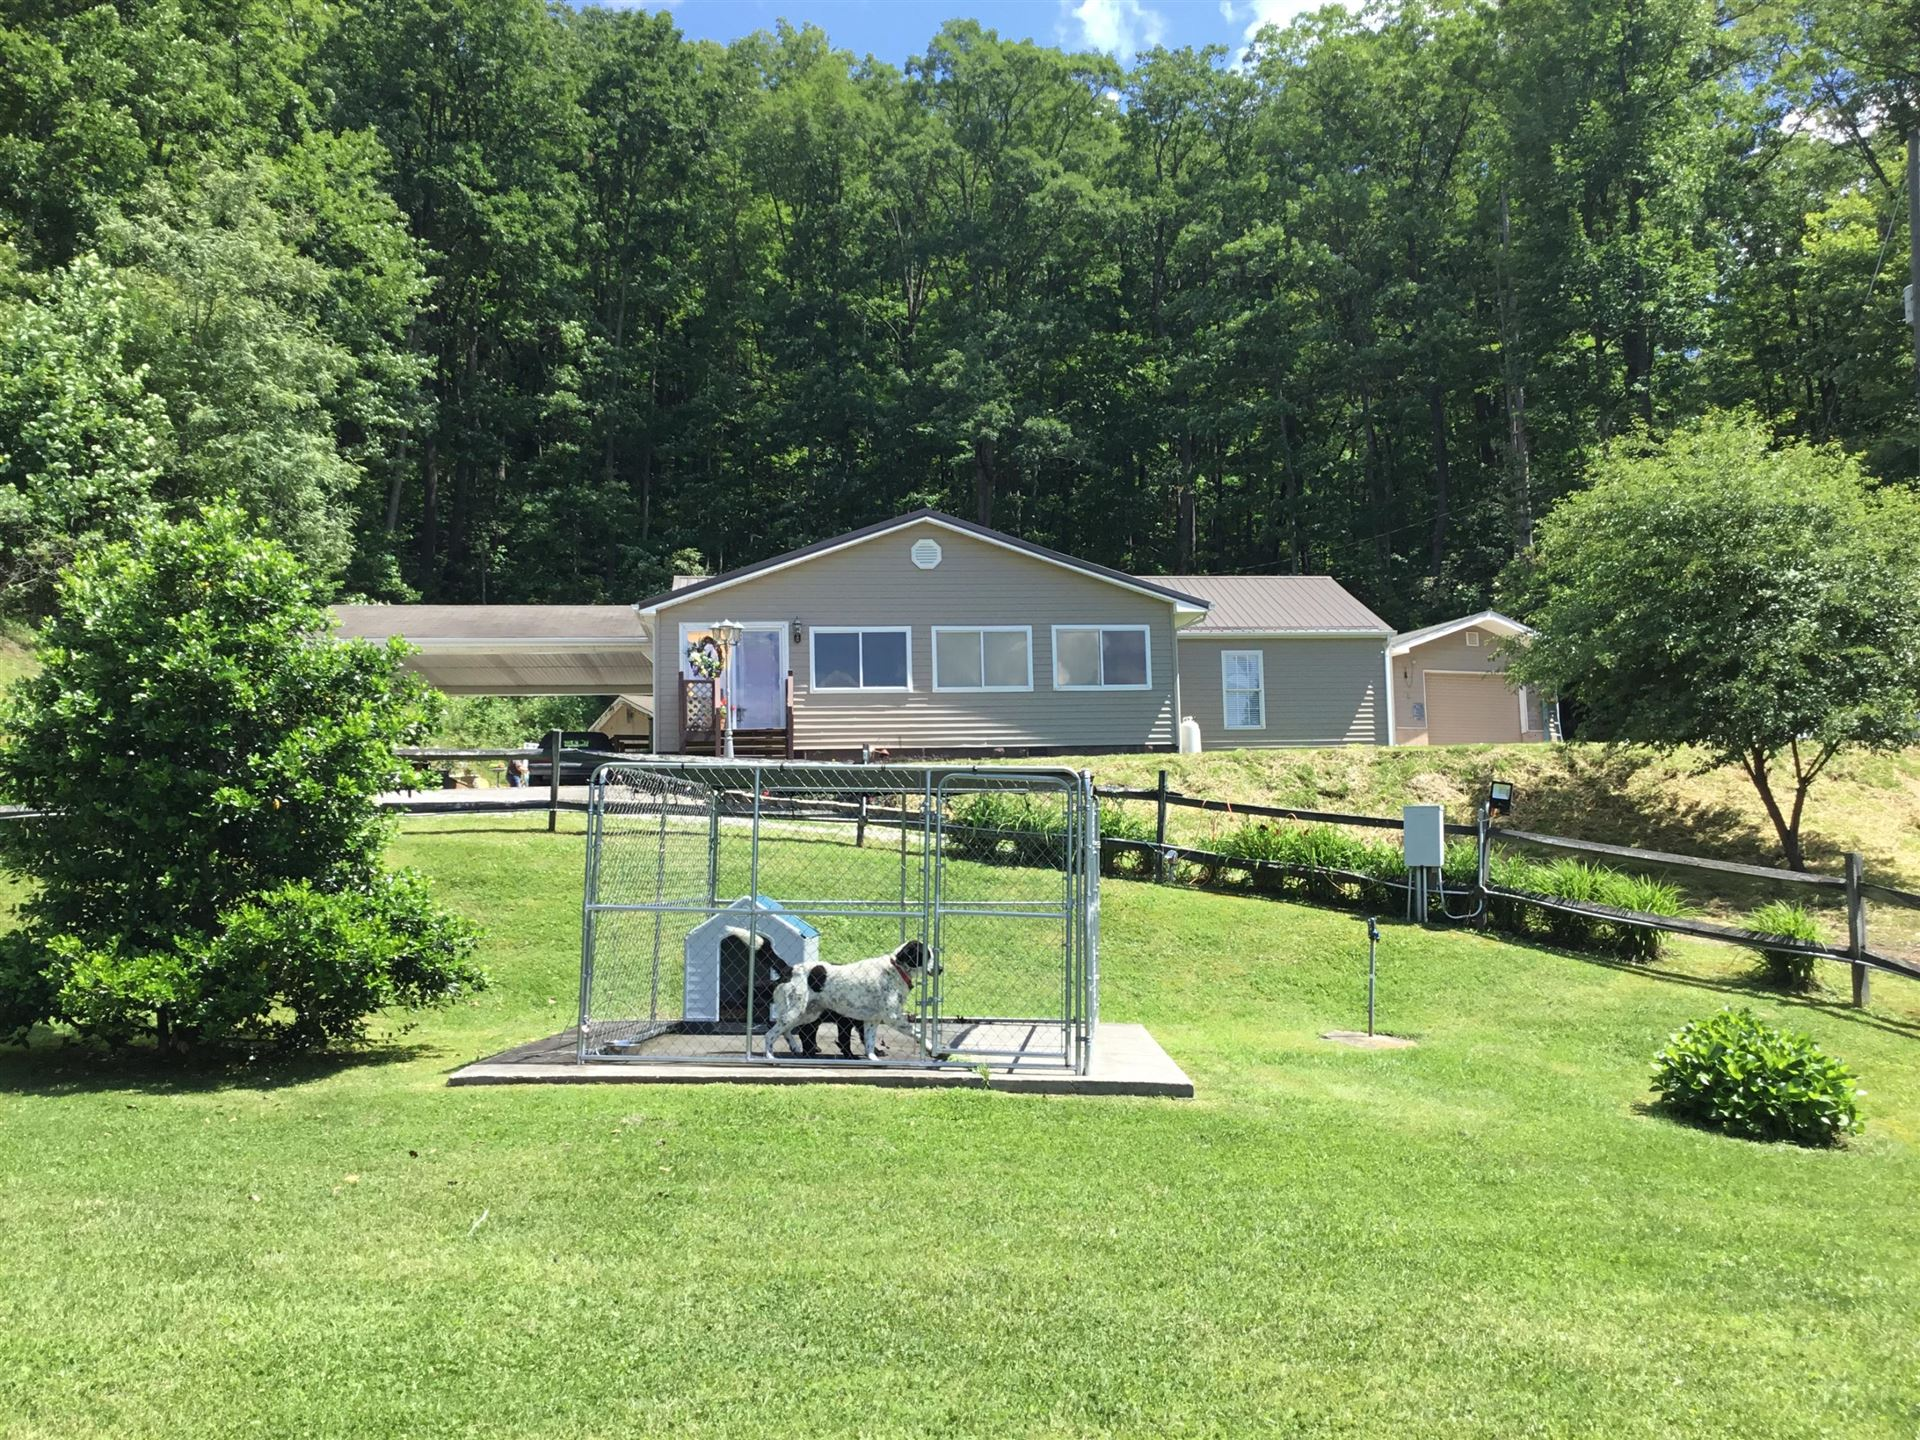 Photo of 12510 Orby Cantrell Highway, Pound, VA 24279 (MLS # 9926678)